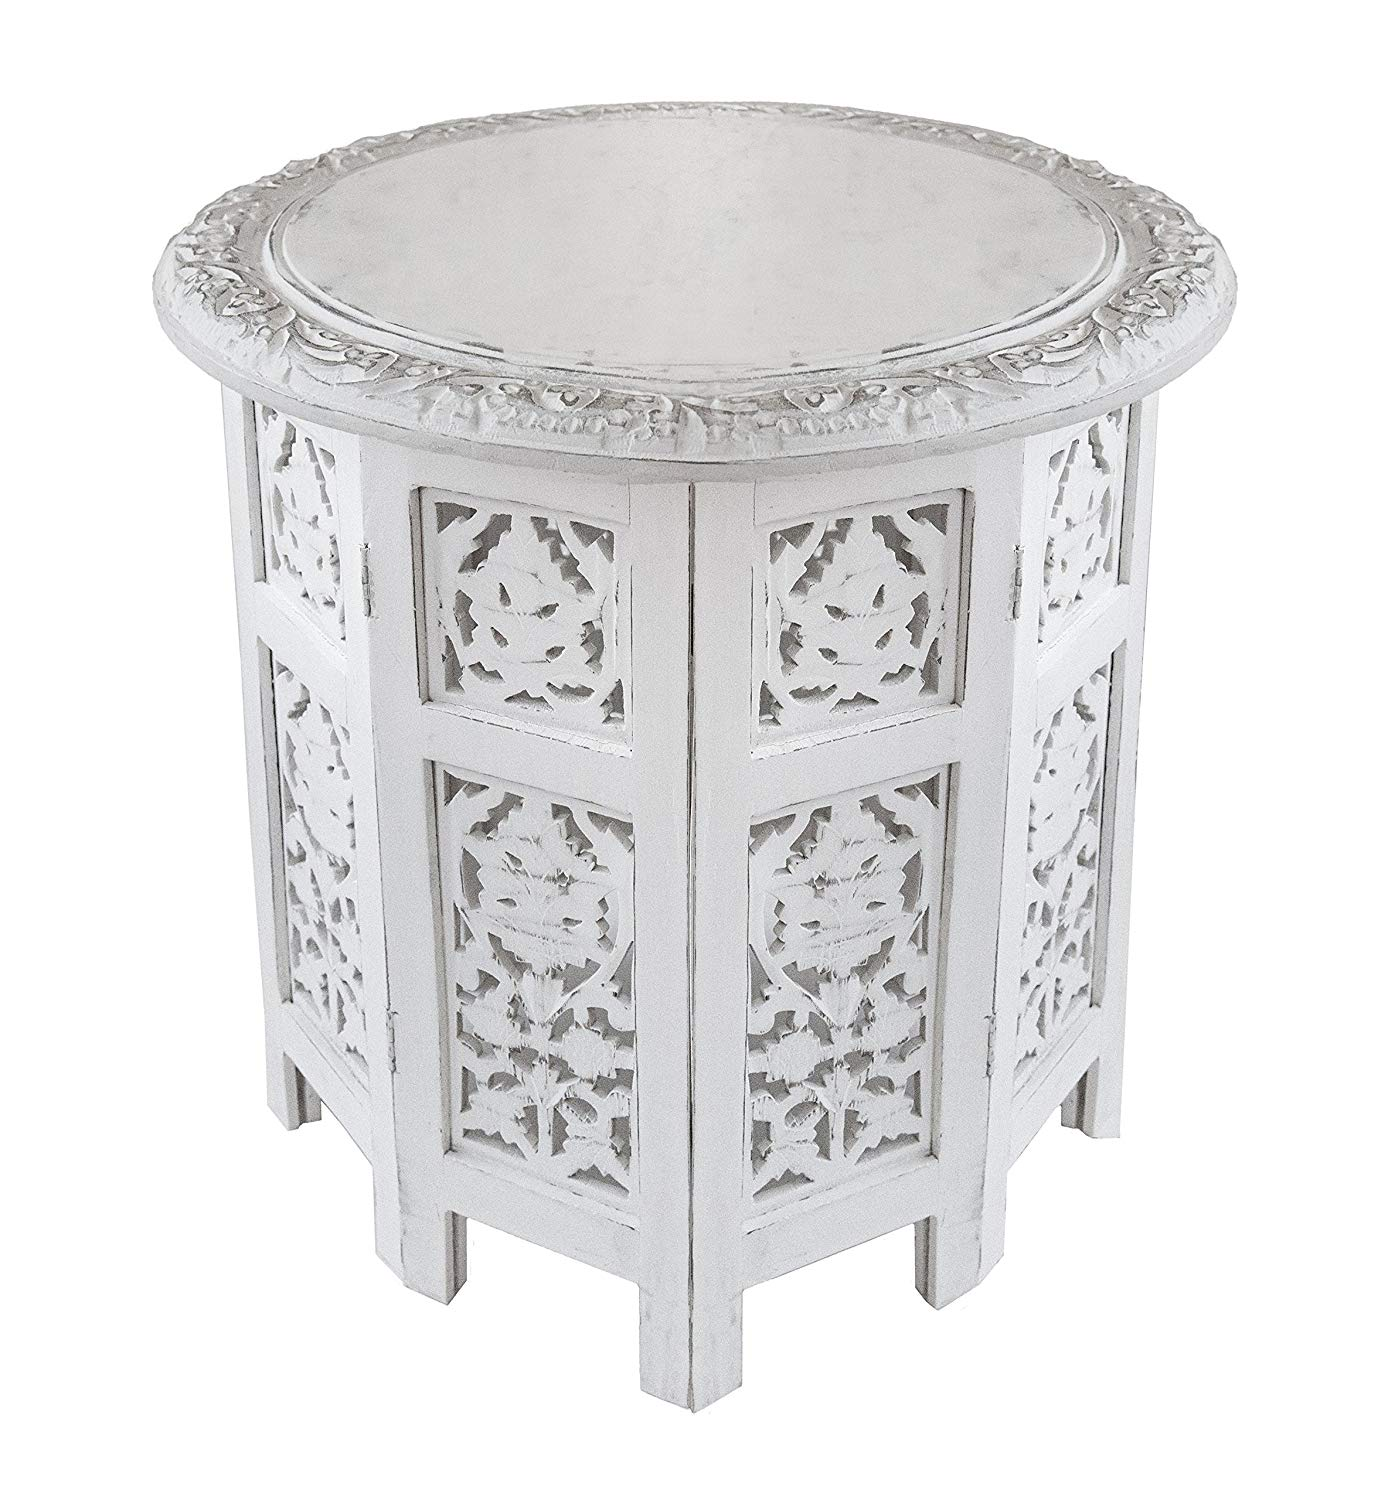 cotton craft jaipur solid wood handcrafted carved metal folding accent table coffee antique white inch round top high kitchen west elm coat rack slim console plastic outdoor end